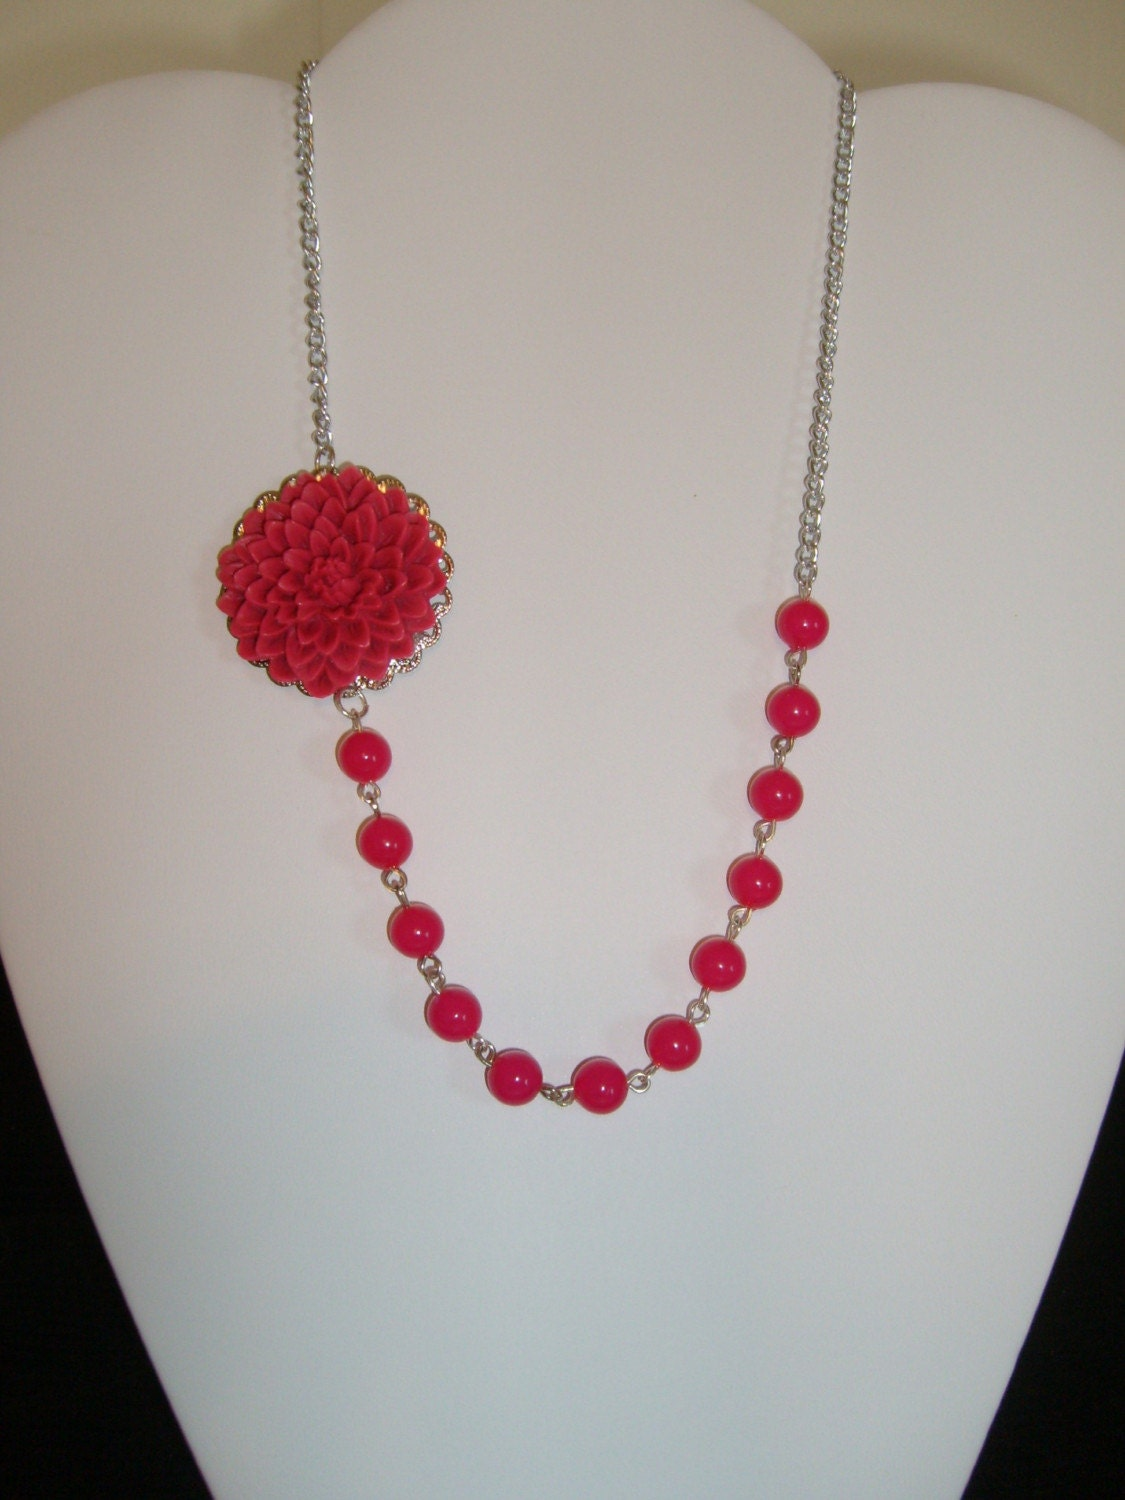 Fuchsia Rosary-Style Necklace with Fuchsia 32mm Chrysanthemum